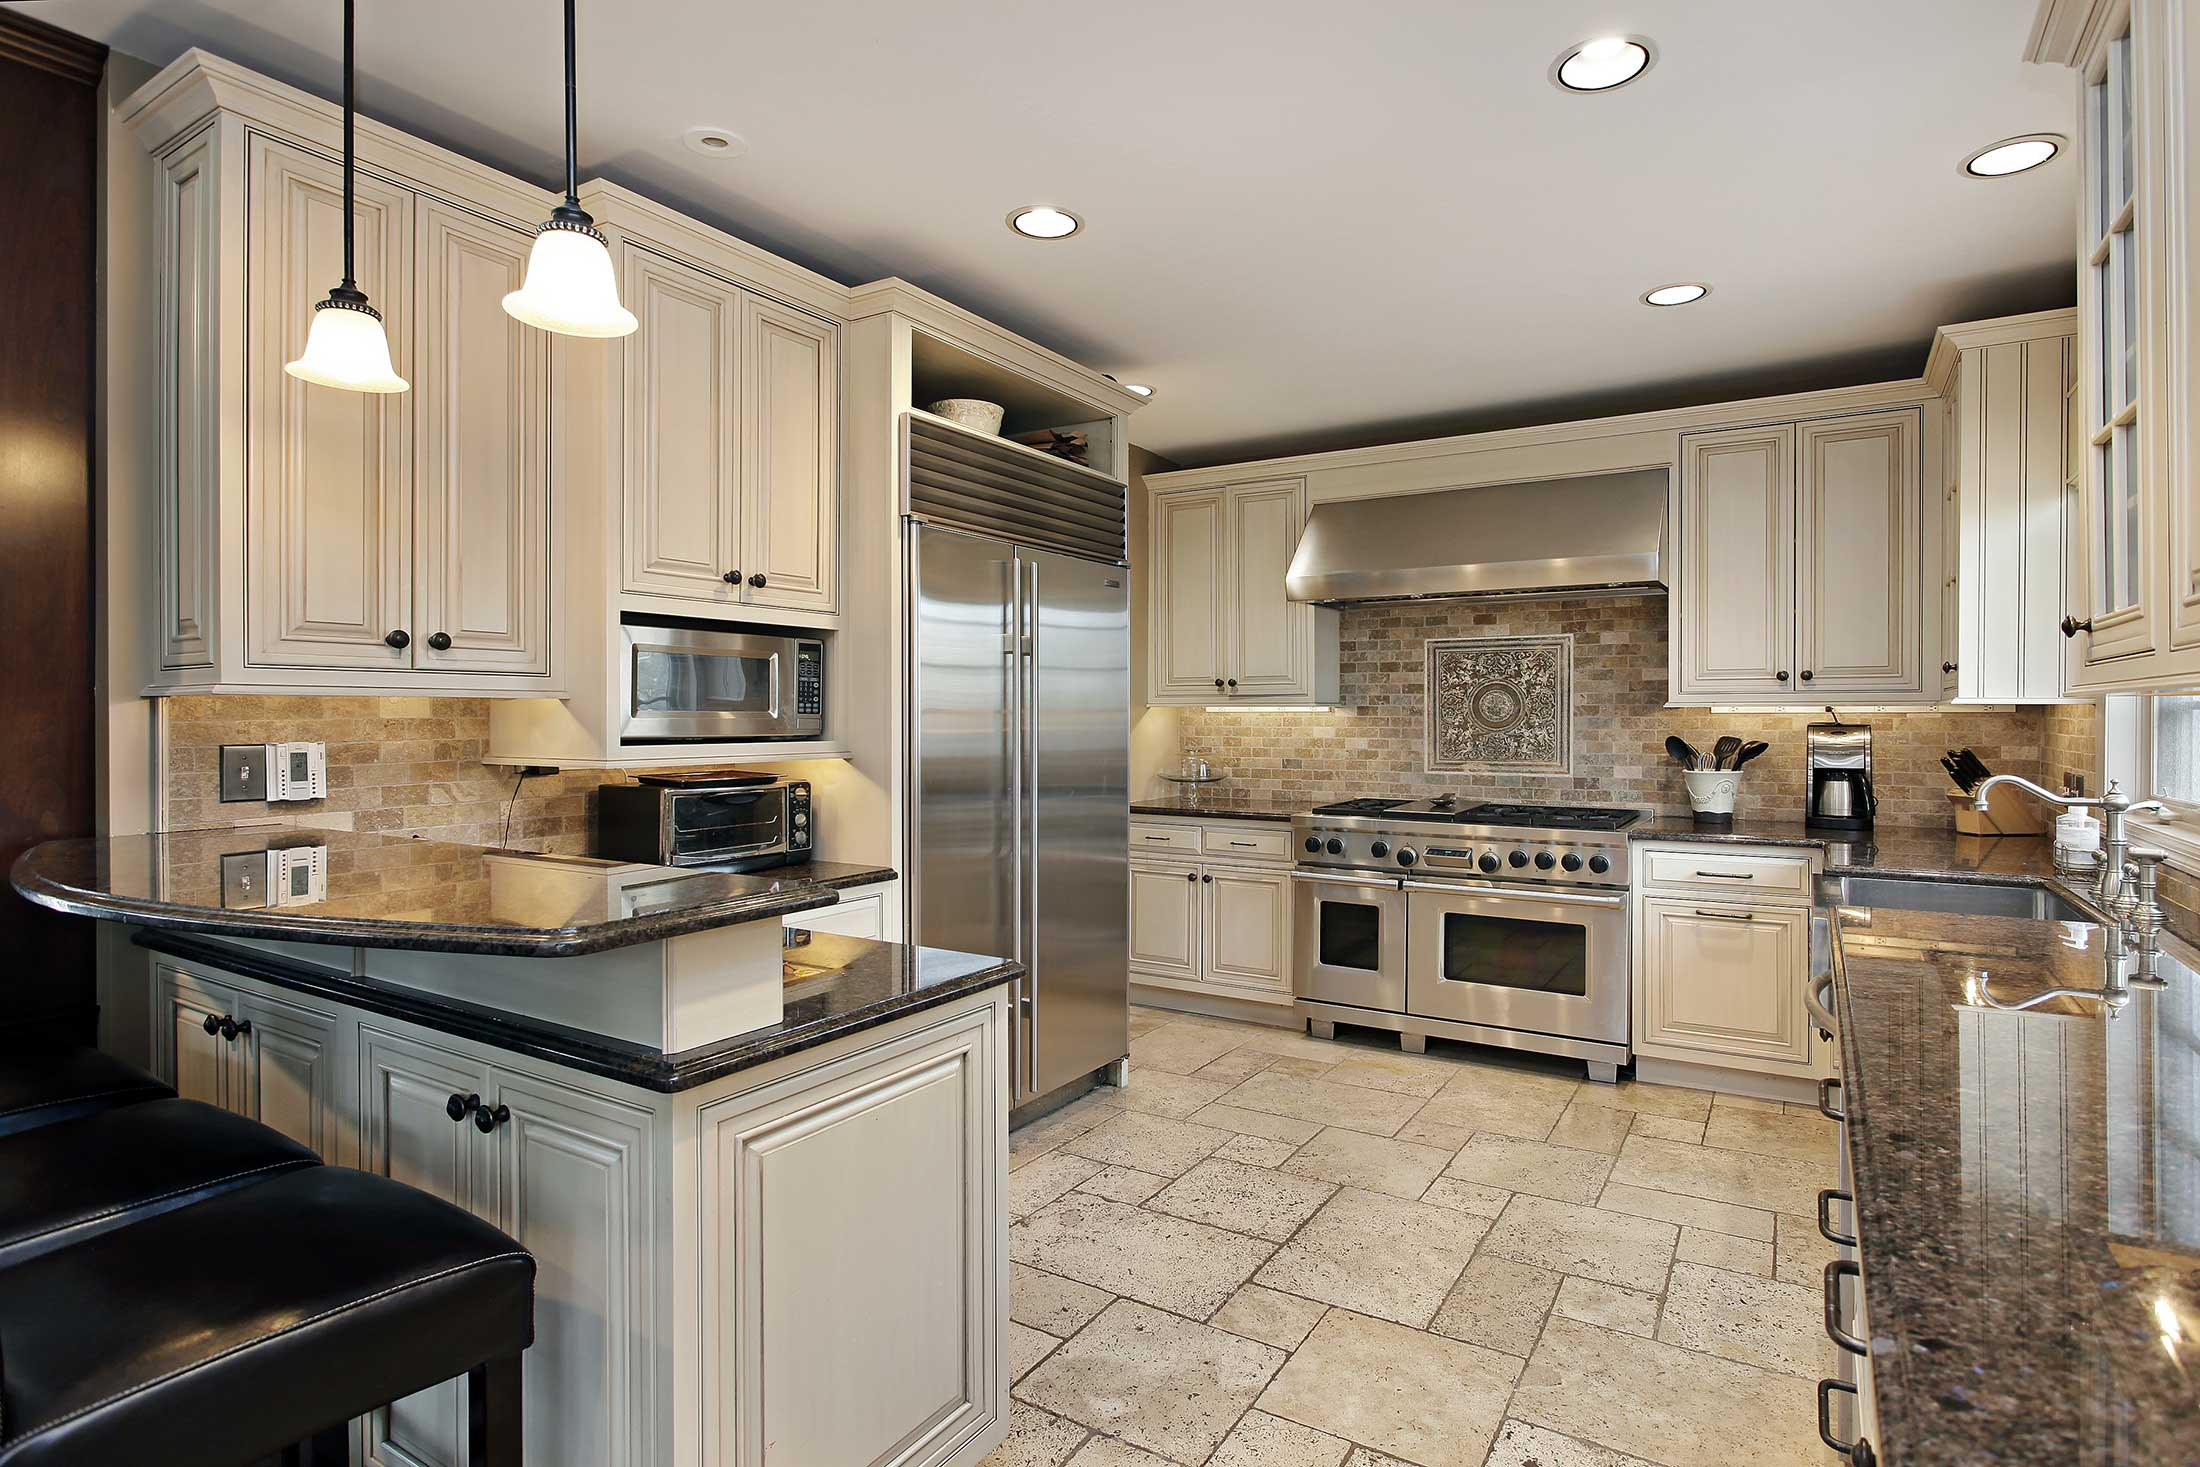 maple leaf kitchen cabinets ltd kitchen cabinets http www mapleleafkitchencabinet com wp content uploads